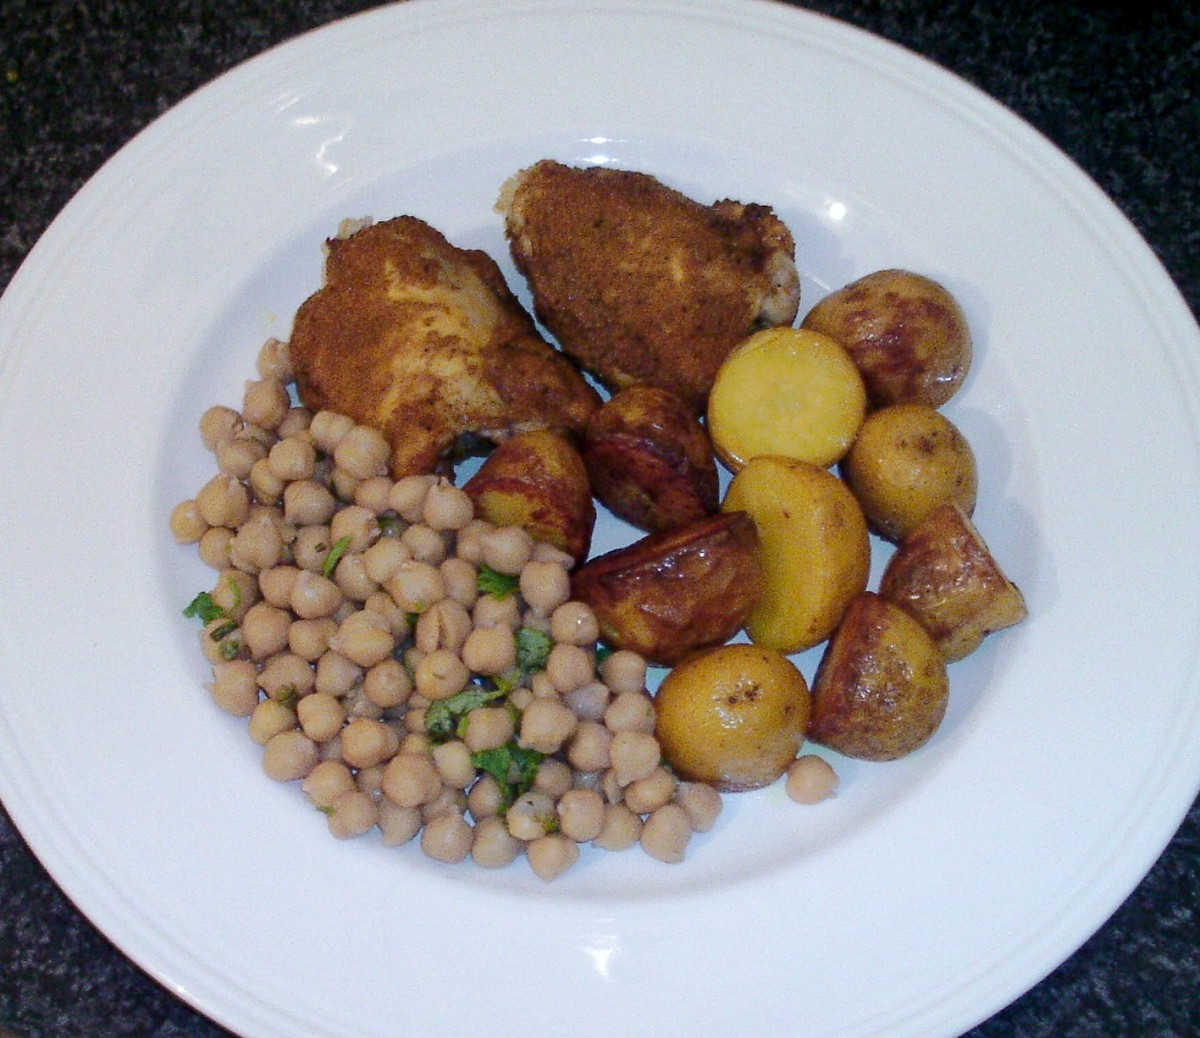 Turmeric spiced baked chicken thighs with roast potatoes and chickpeas